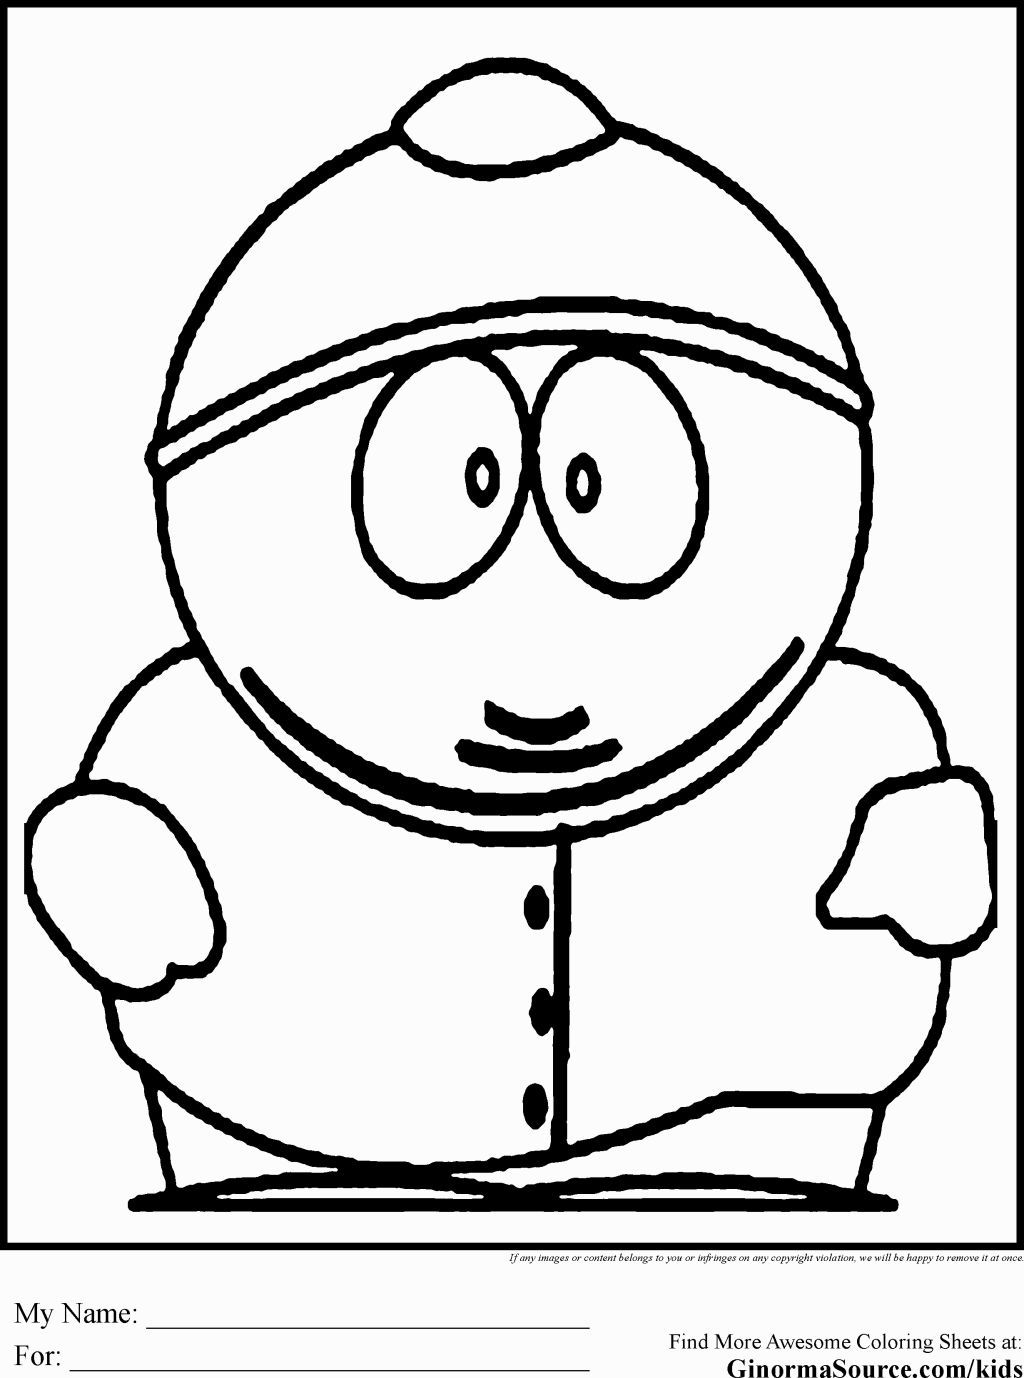 Printable south park coloring pages coloring home for Park coloring pages